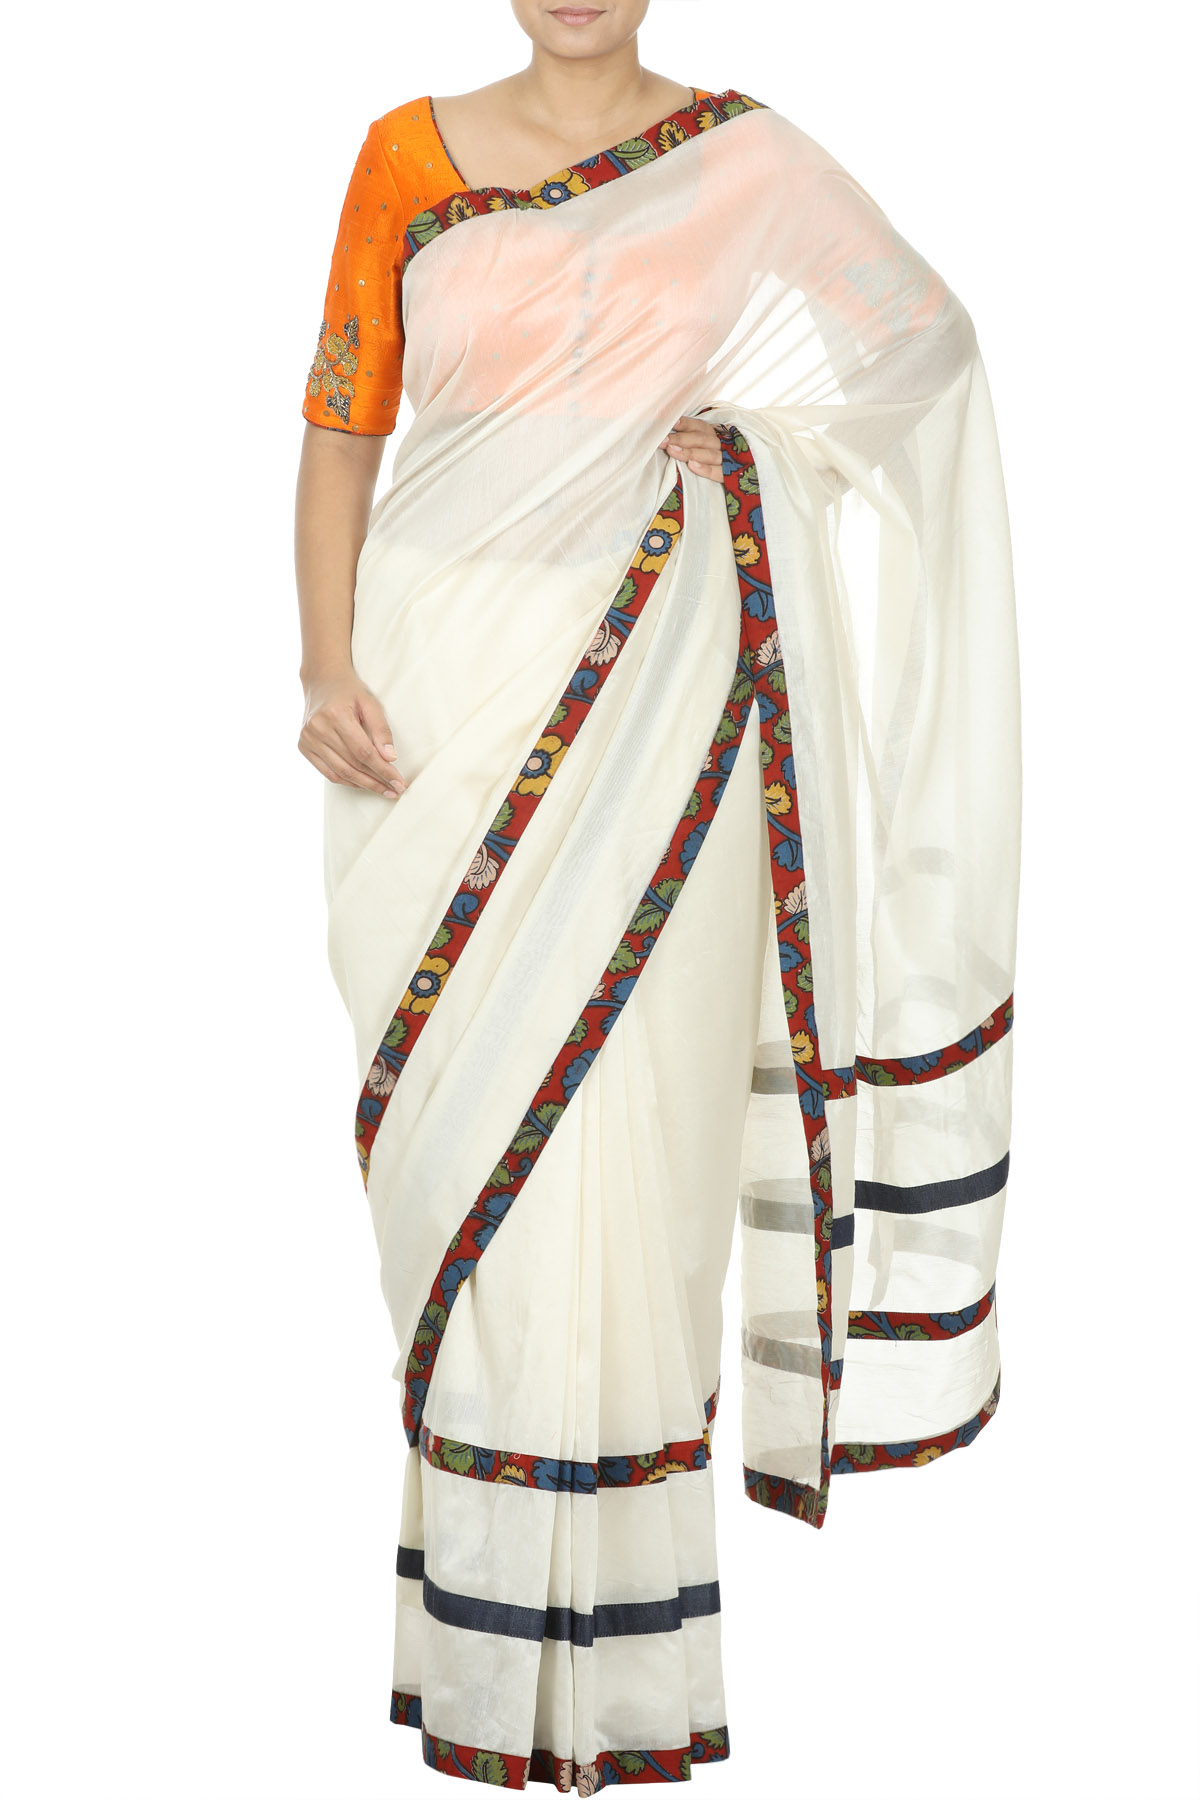 Beige Chanderi Bordered Saree (Blouse not included)